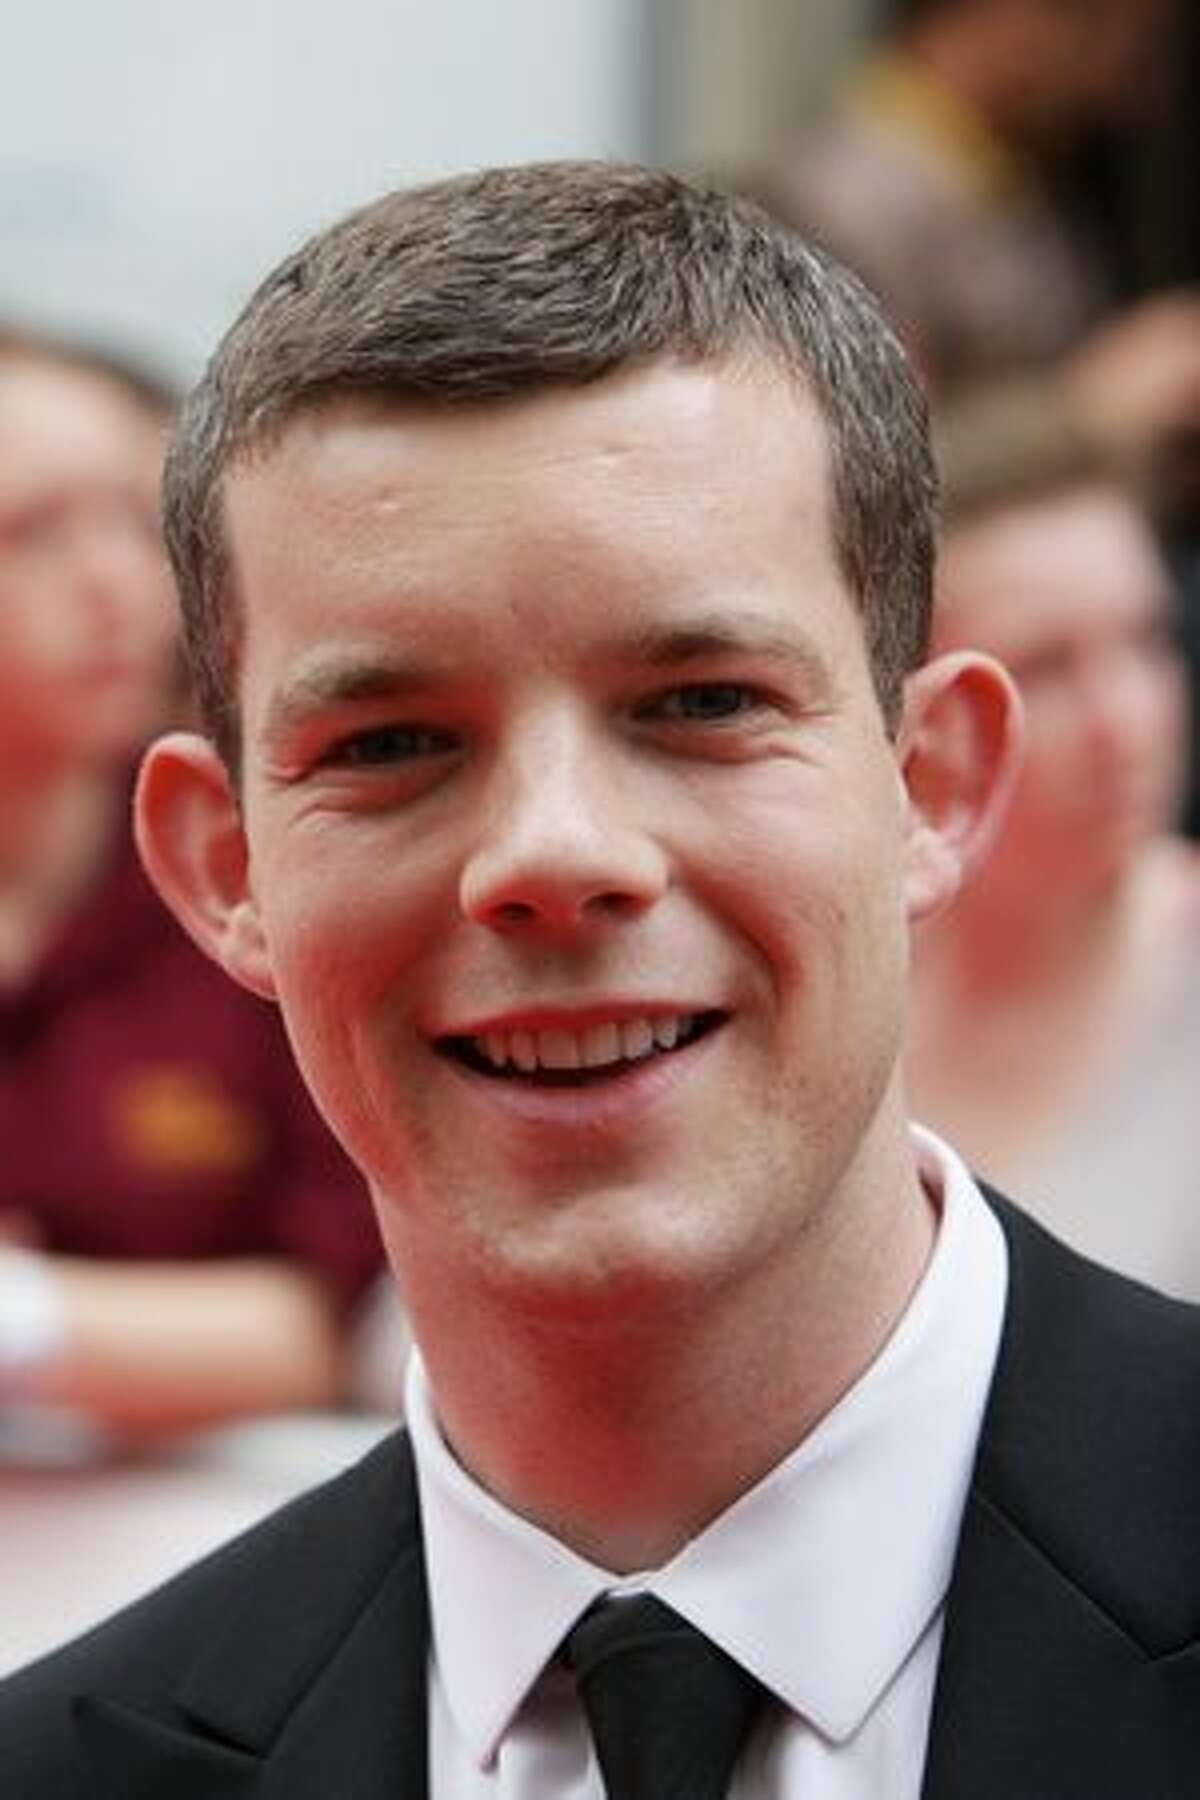 Russell Tovey arrives at The Philips British Academy Television Awards held at The Palladium.